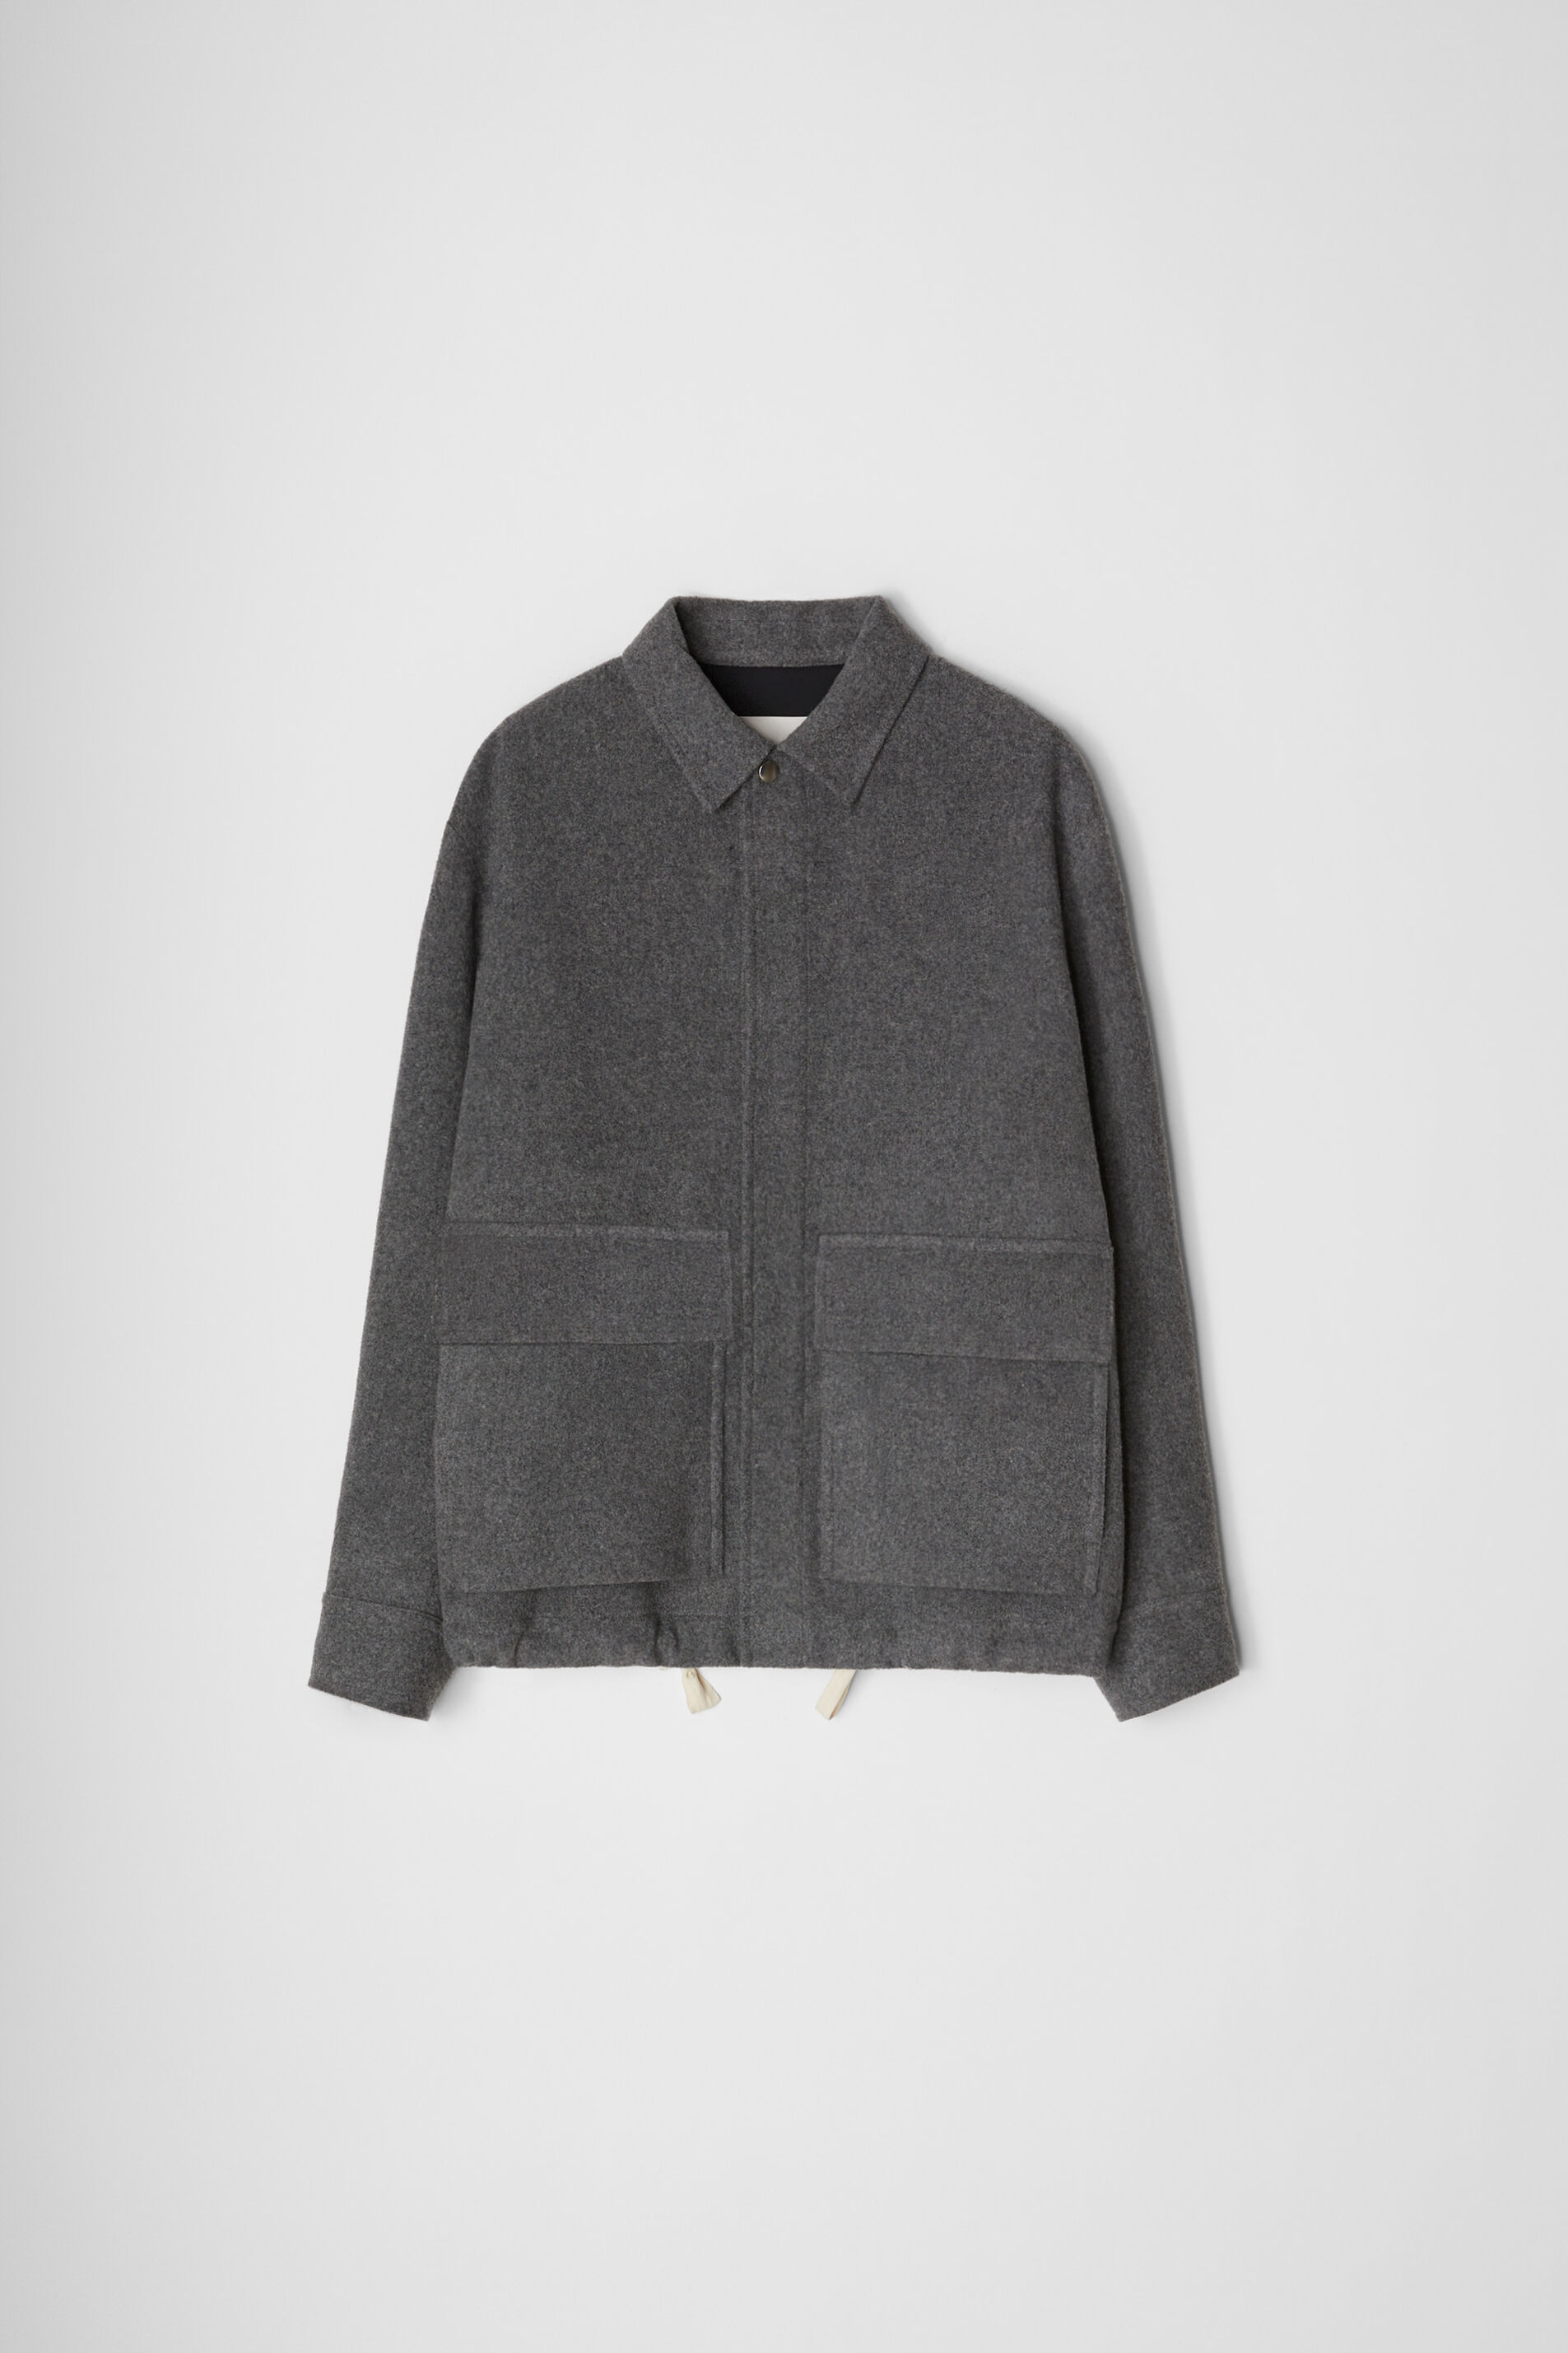 Jacket, dark grey, large